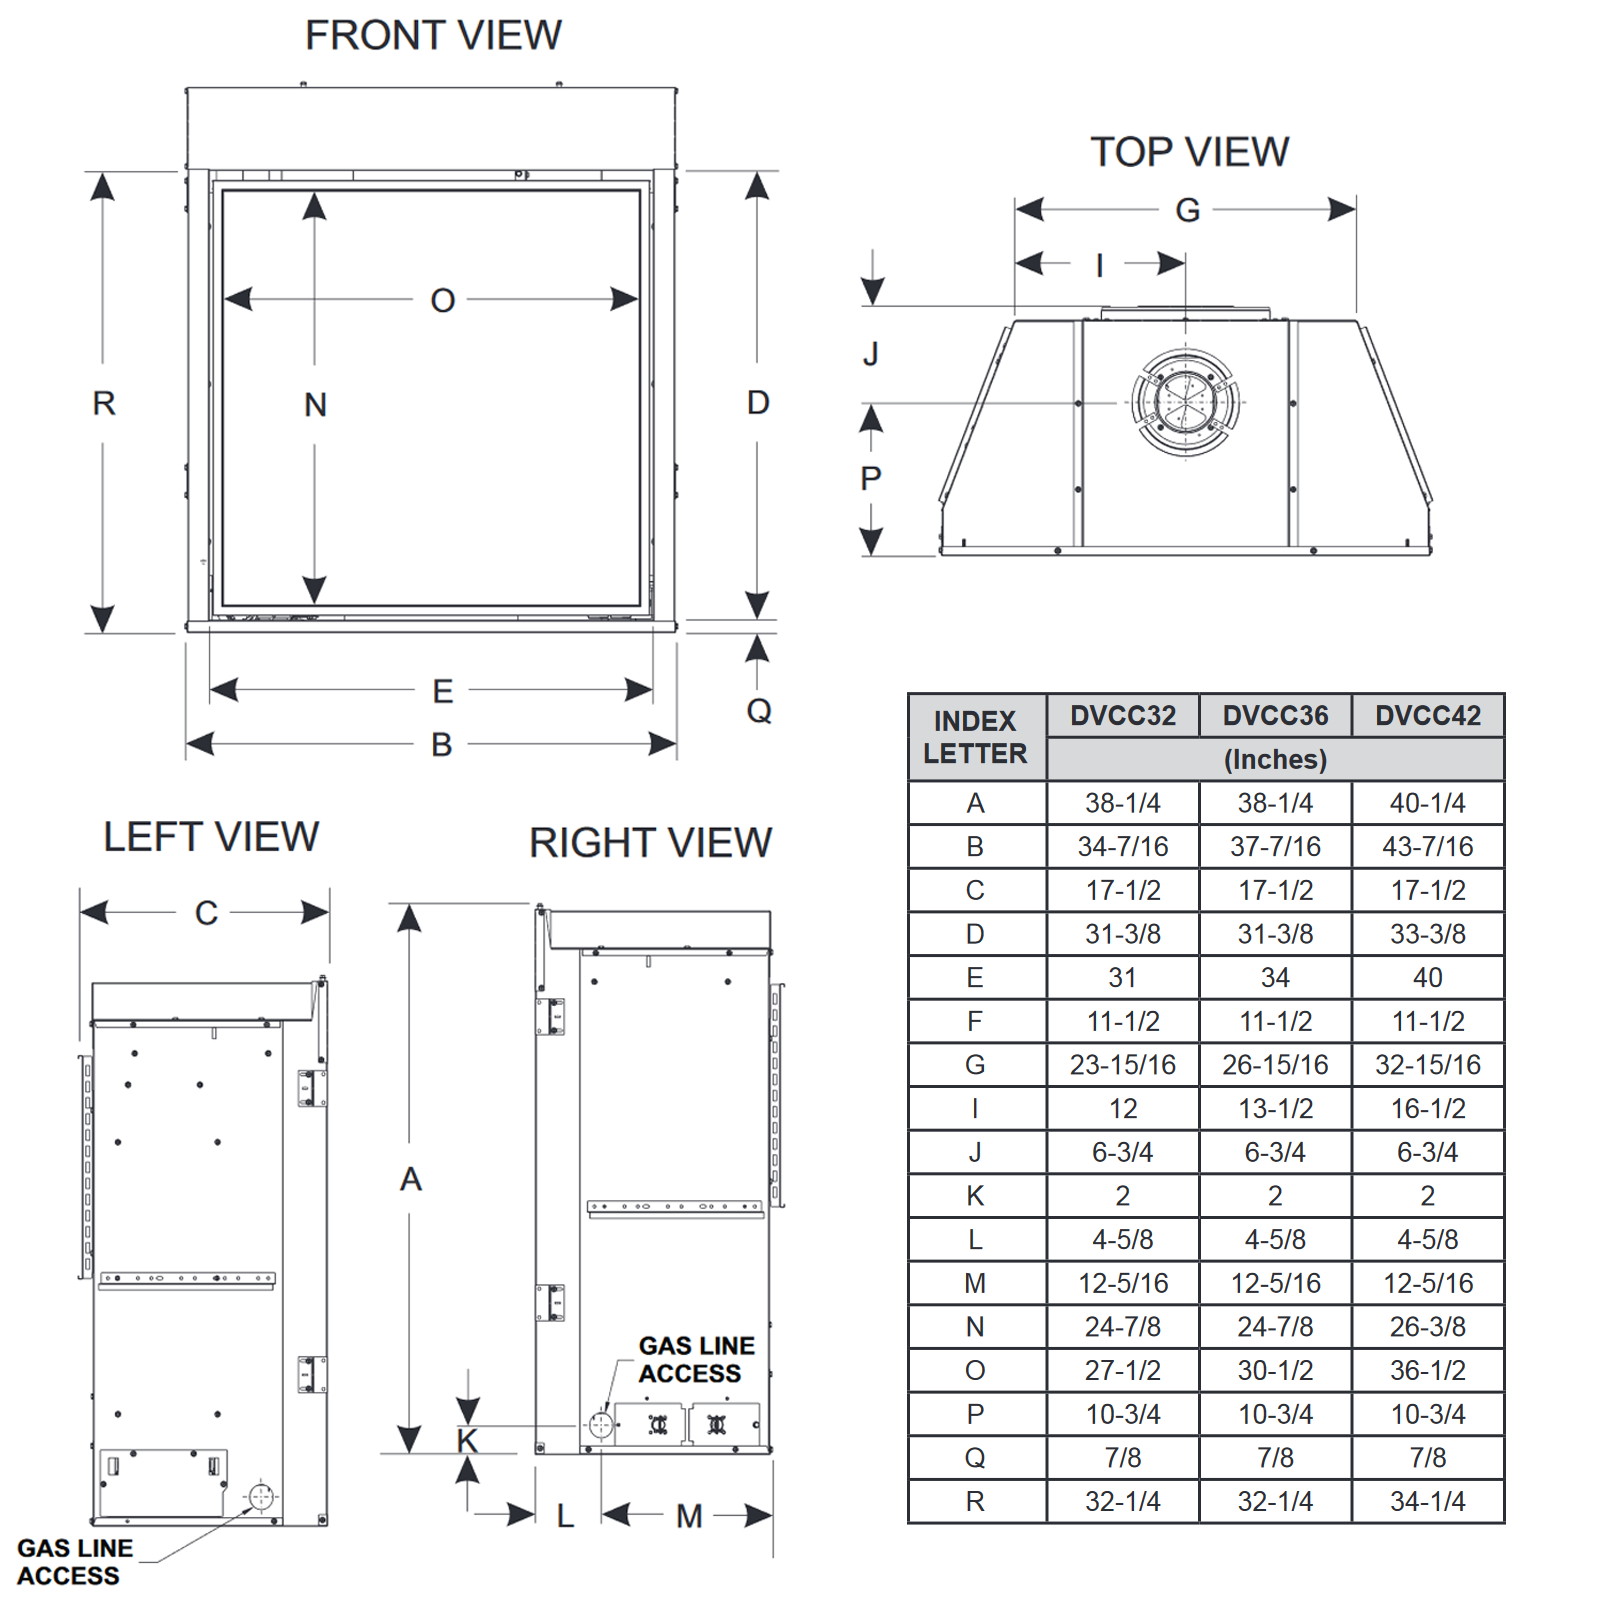 DVCC42 Technical Drawing 1